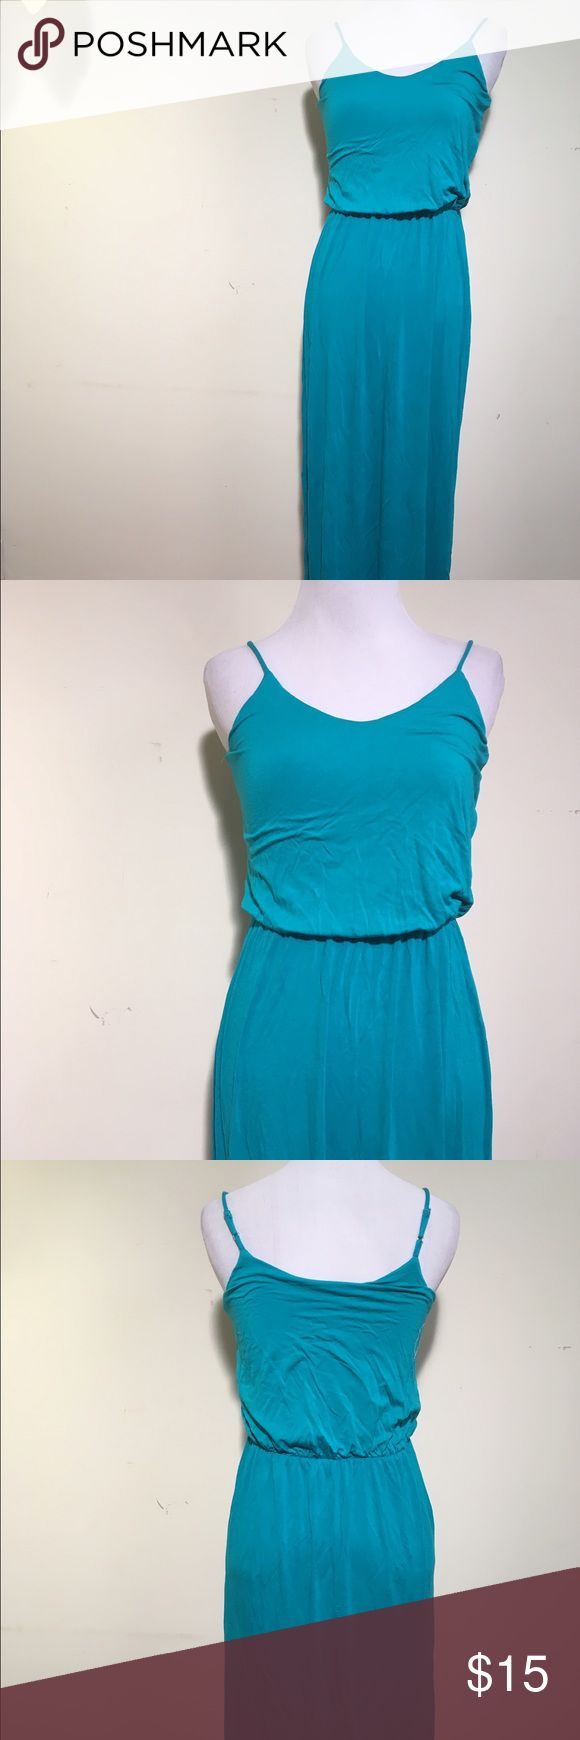 "Urban outfitters; Lush maxi dress Pretty long maxi dress. It is a blue/green color. The bust is 28"" and the waist is 20"" ~ adjustable because the waist is elastic. The length is 54"". The fabric is in really good condition; looks unworn. Urban Outfitters Dresses Maxi"